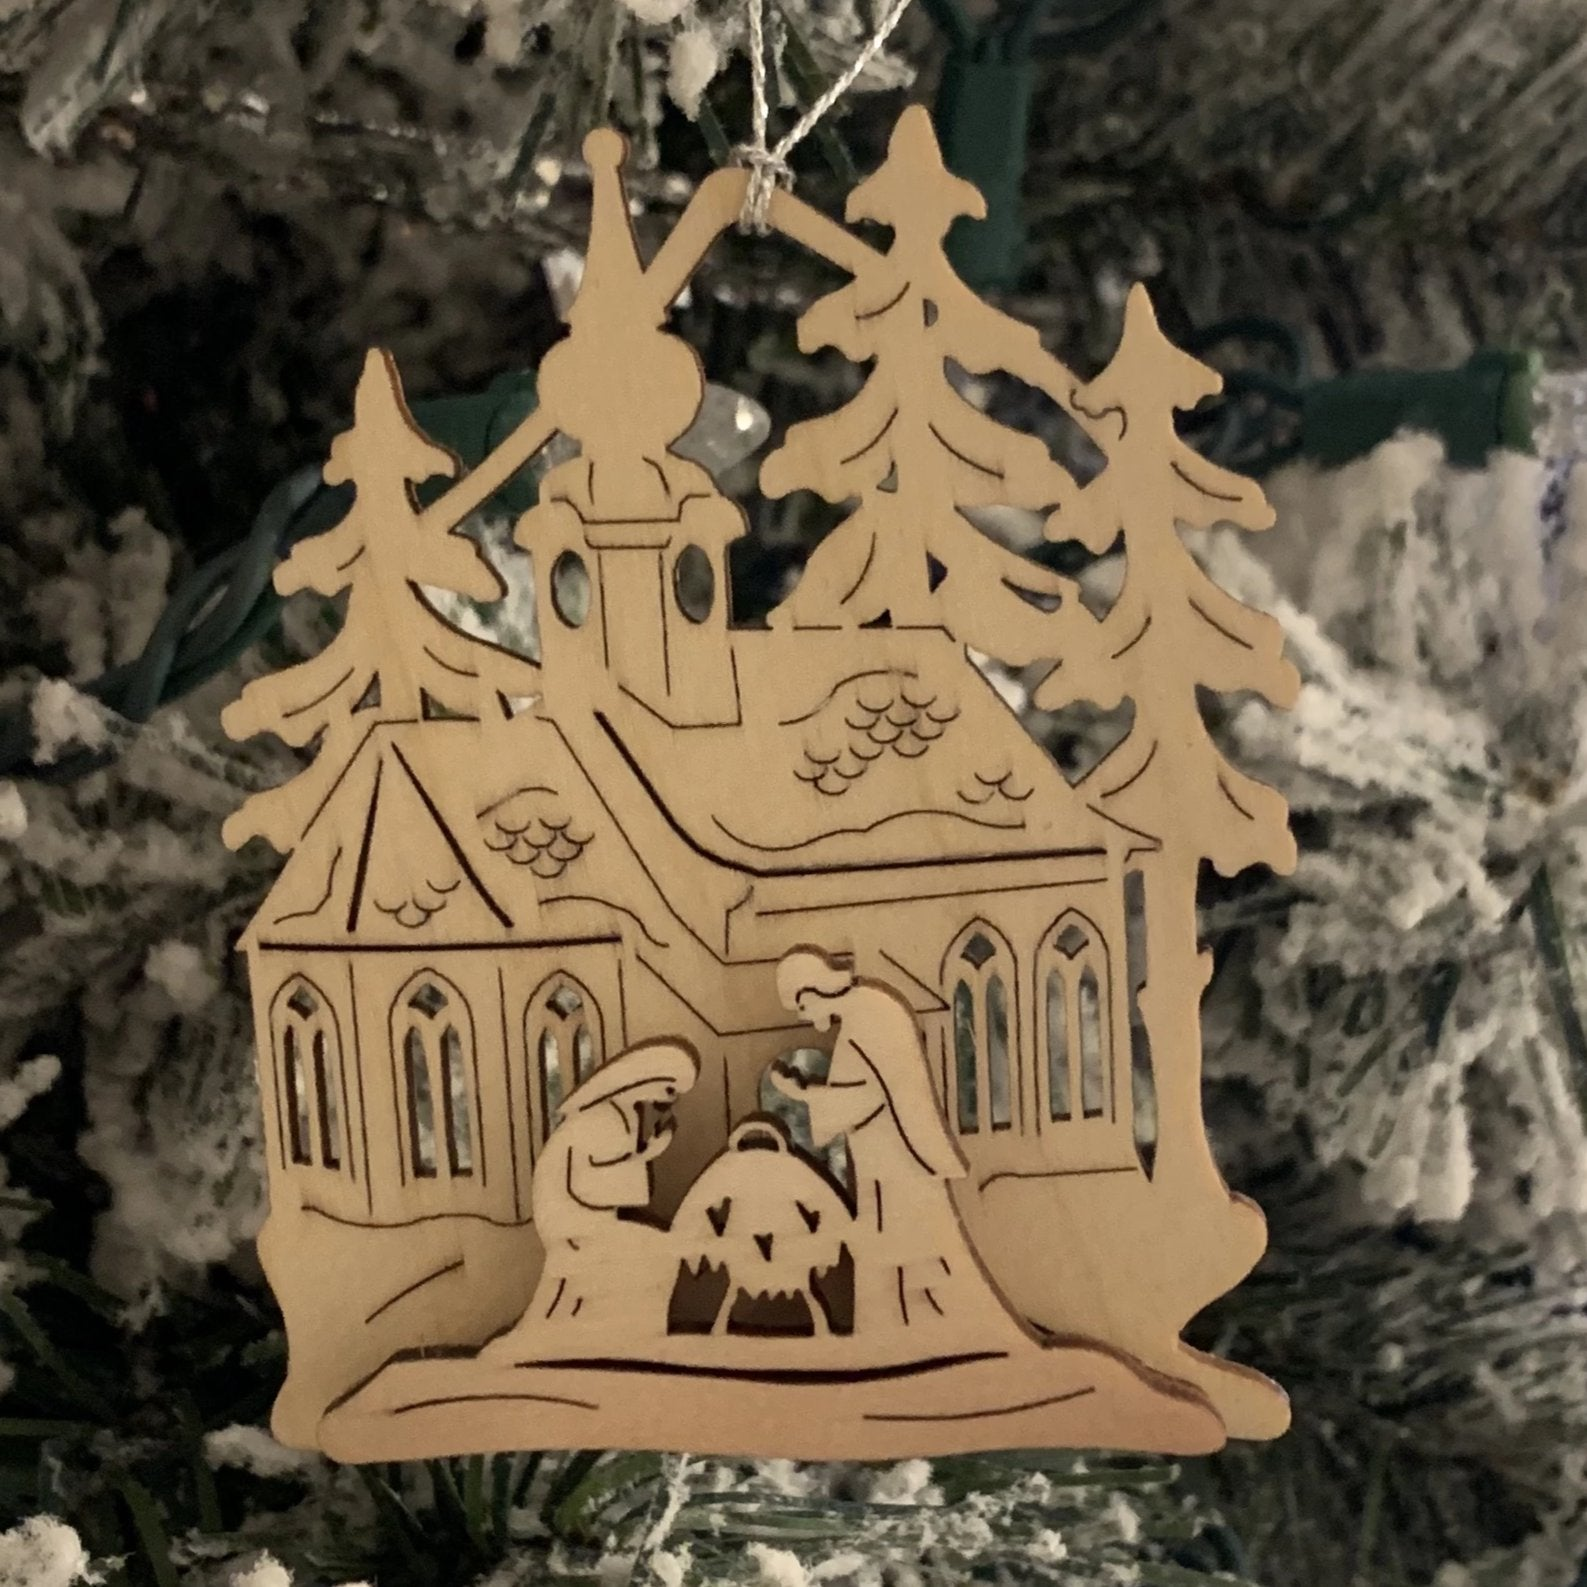 Elke's Manger Scene - Christmas tree decorations